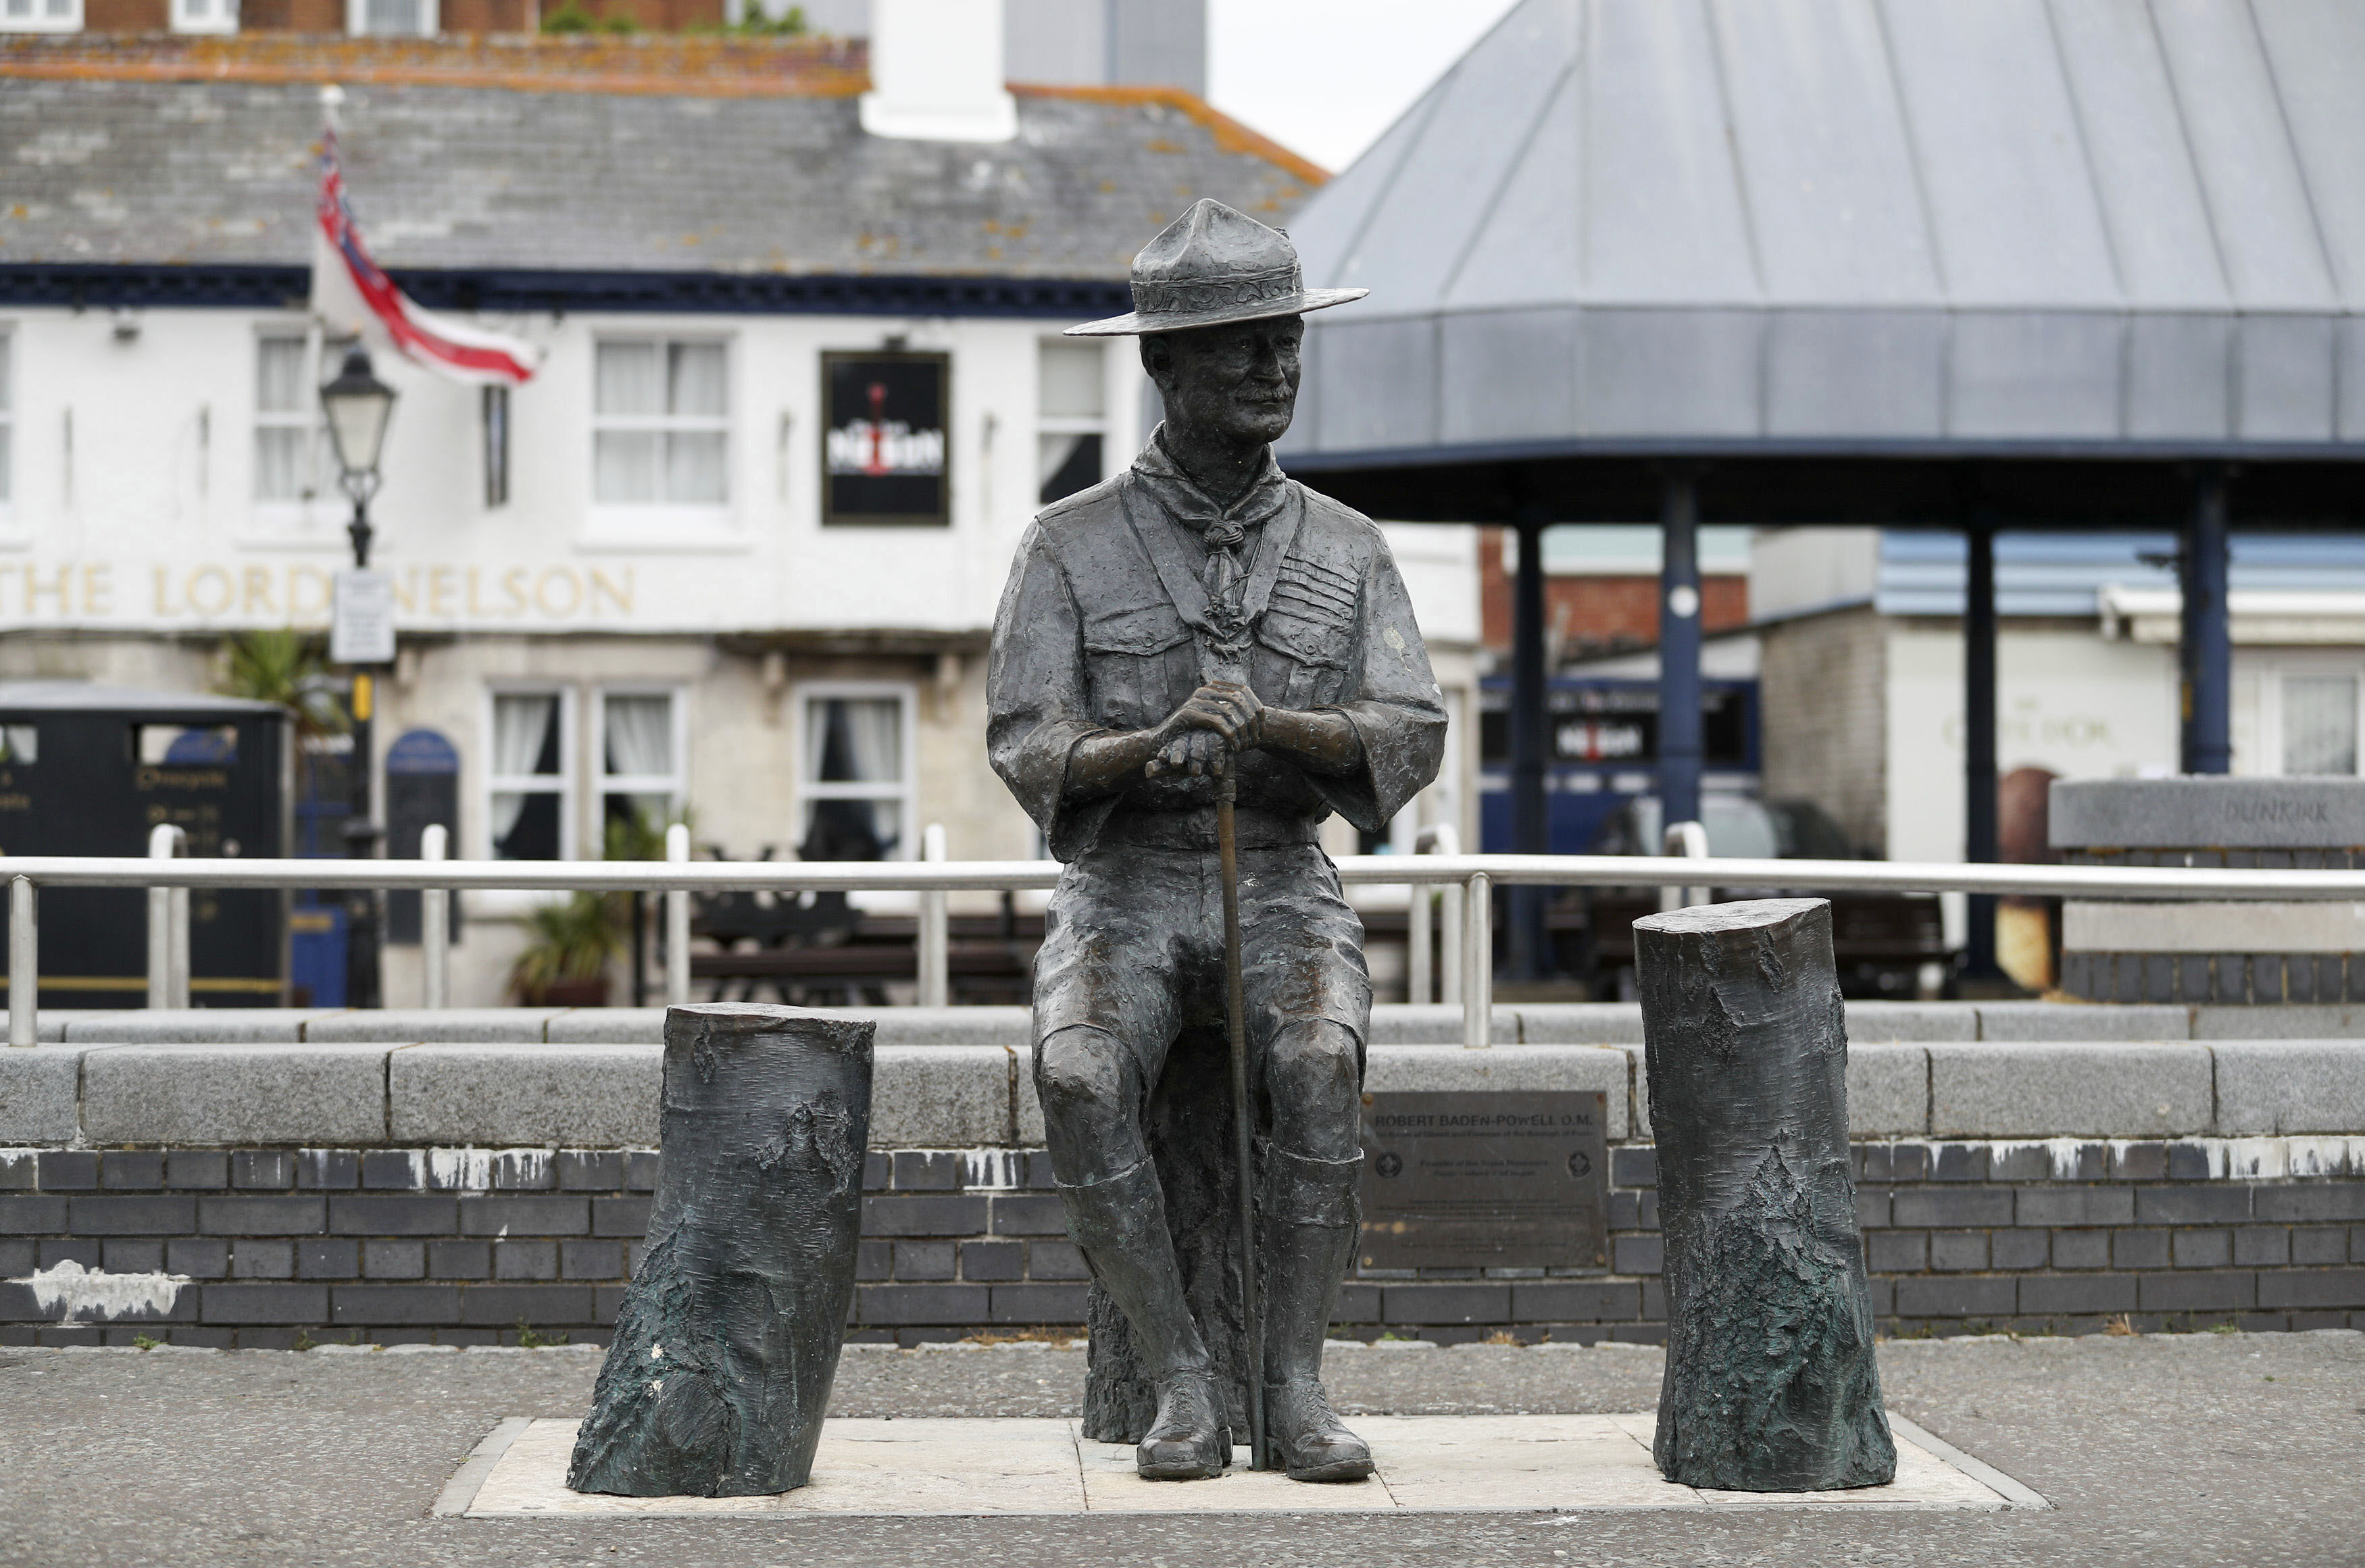 A statue of RobertBaden-Powell, the founder of the worldwide Scout movement, is seen at Poole Quay in Dorset, England, on June 11.